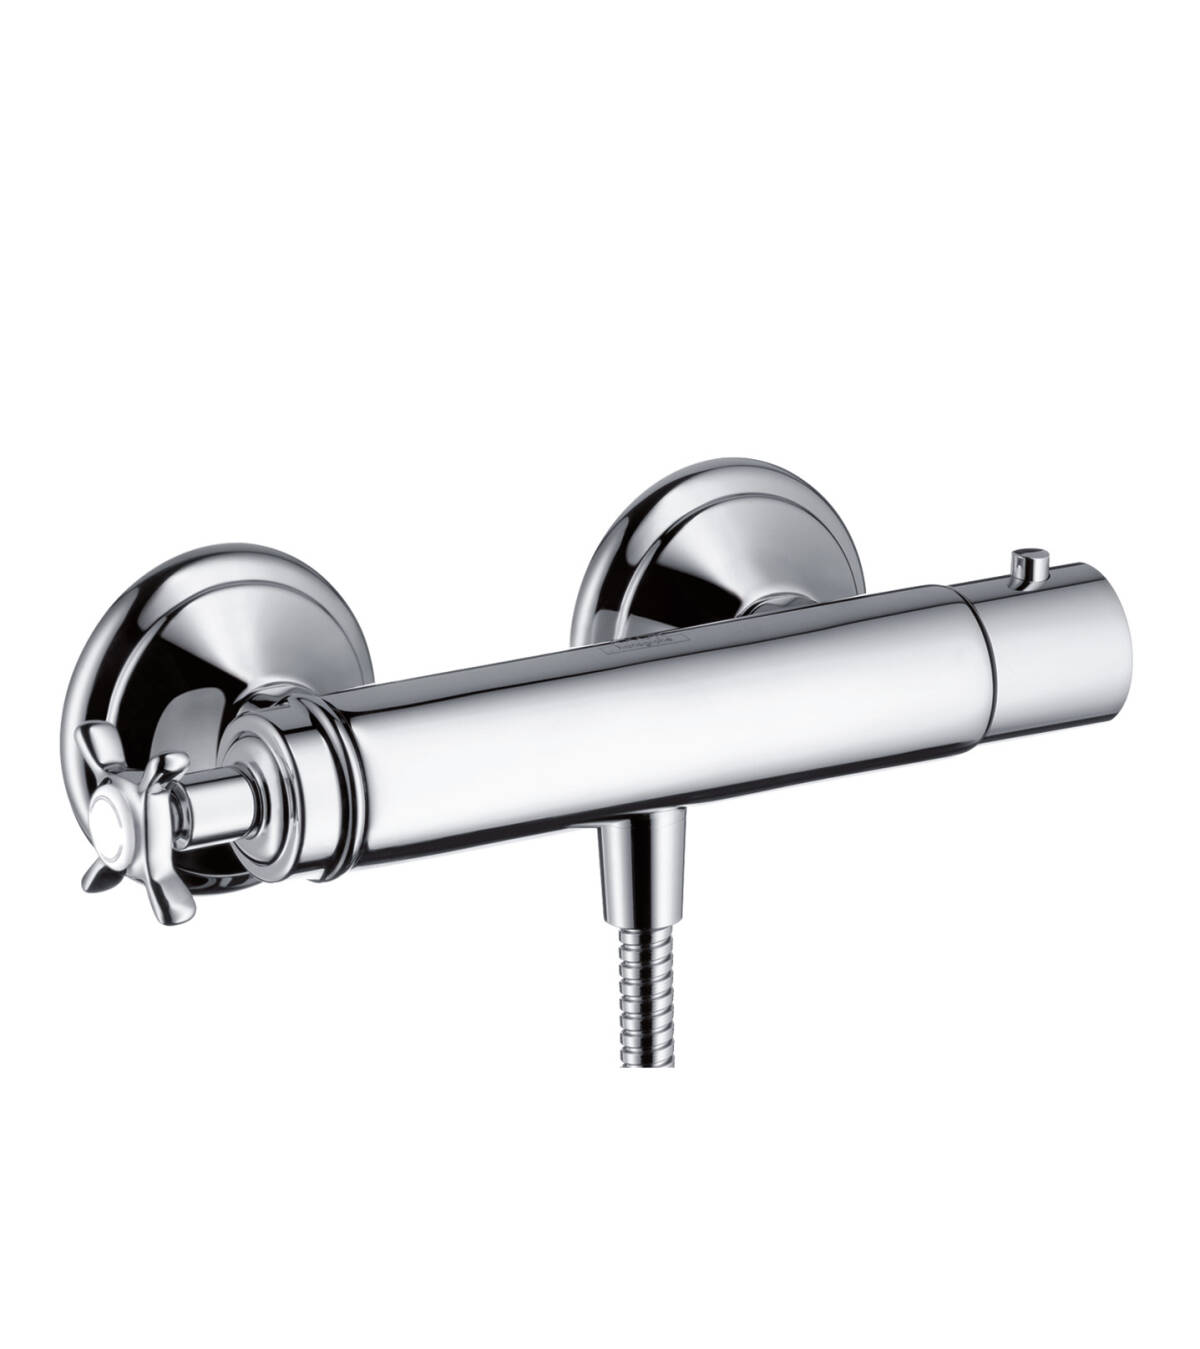 Shower thermostat for exposed installation with cross handle, Polished Black Chrome, 16261330